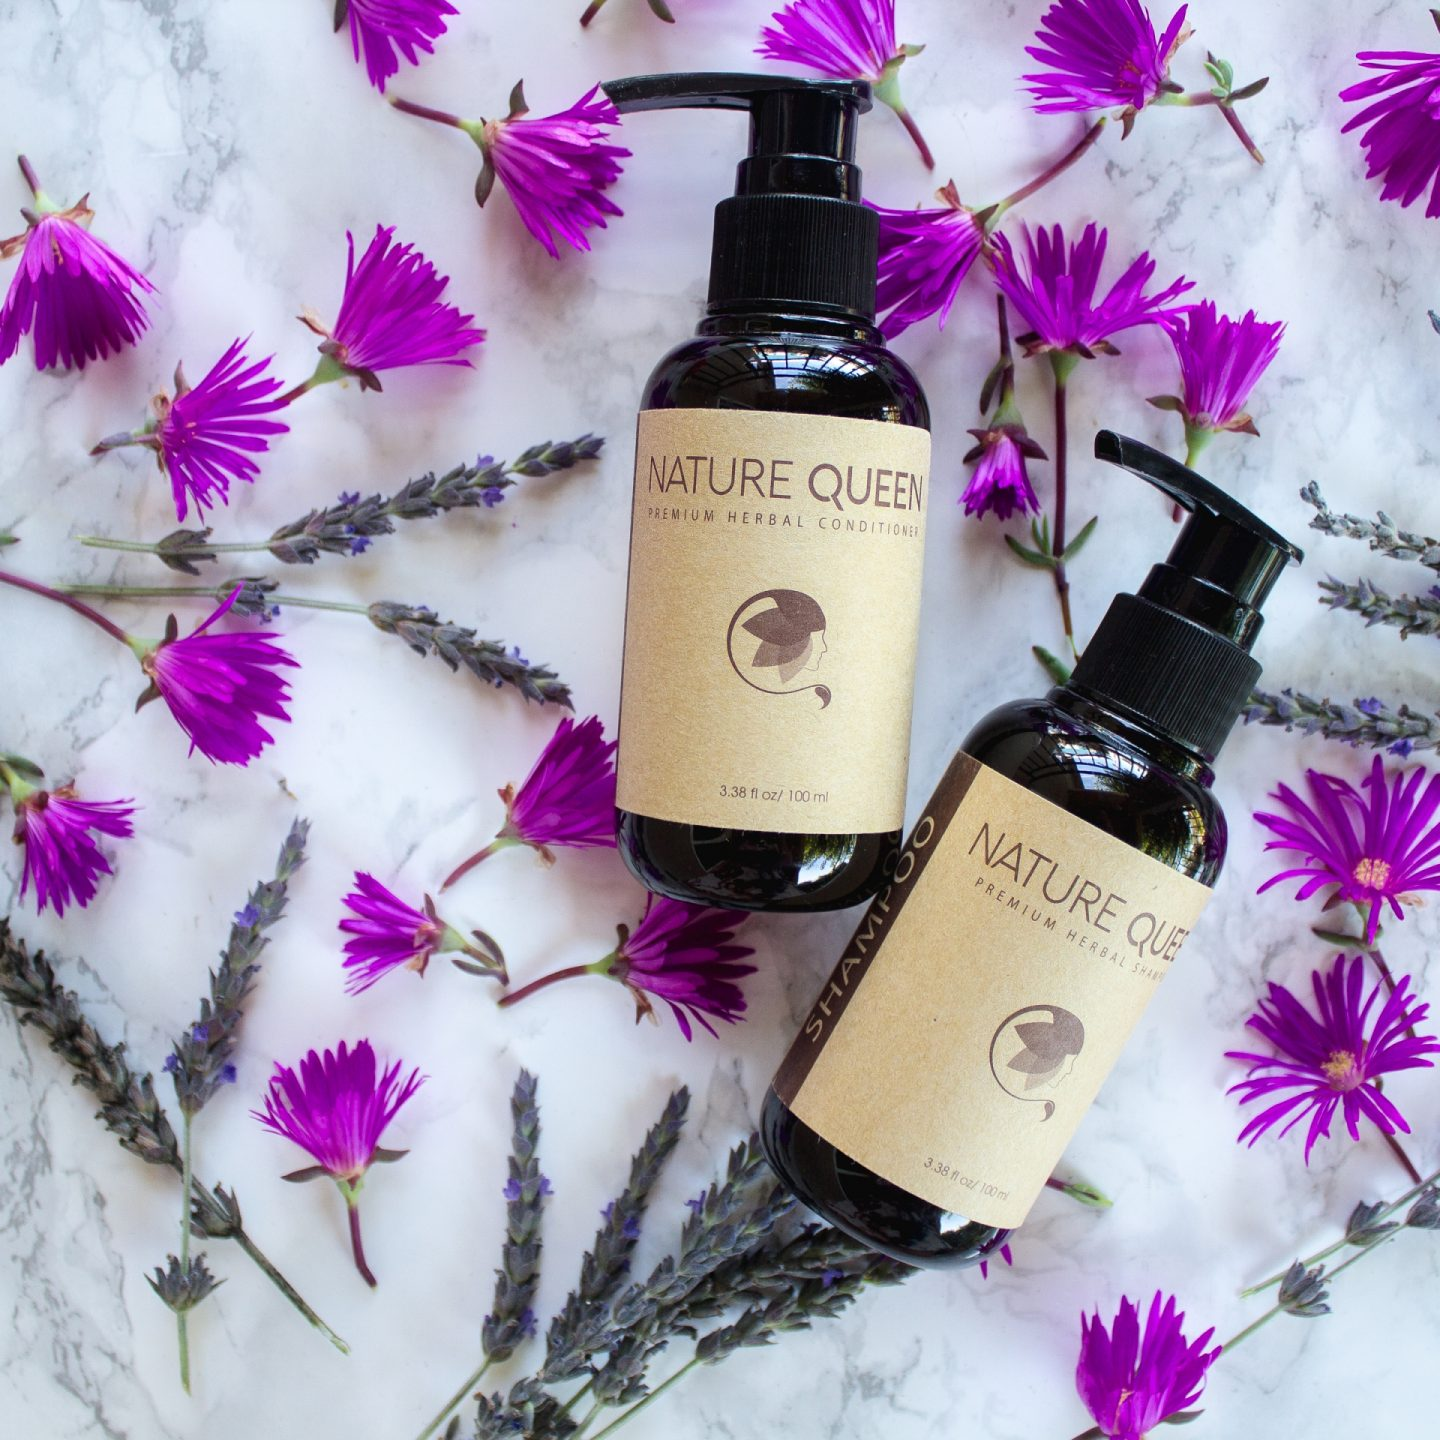 Nature Queen: Natural Hair Care Remedy